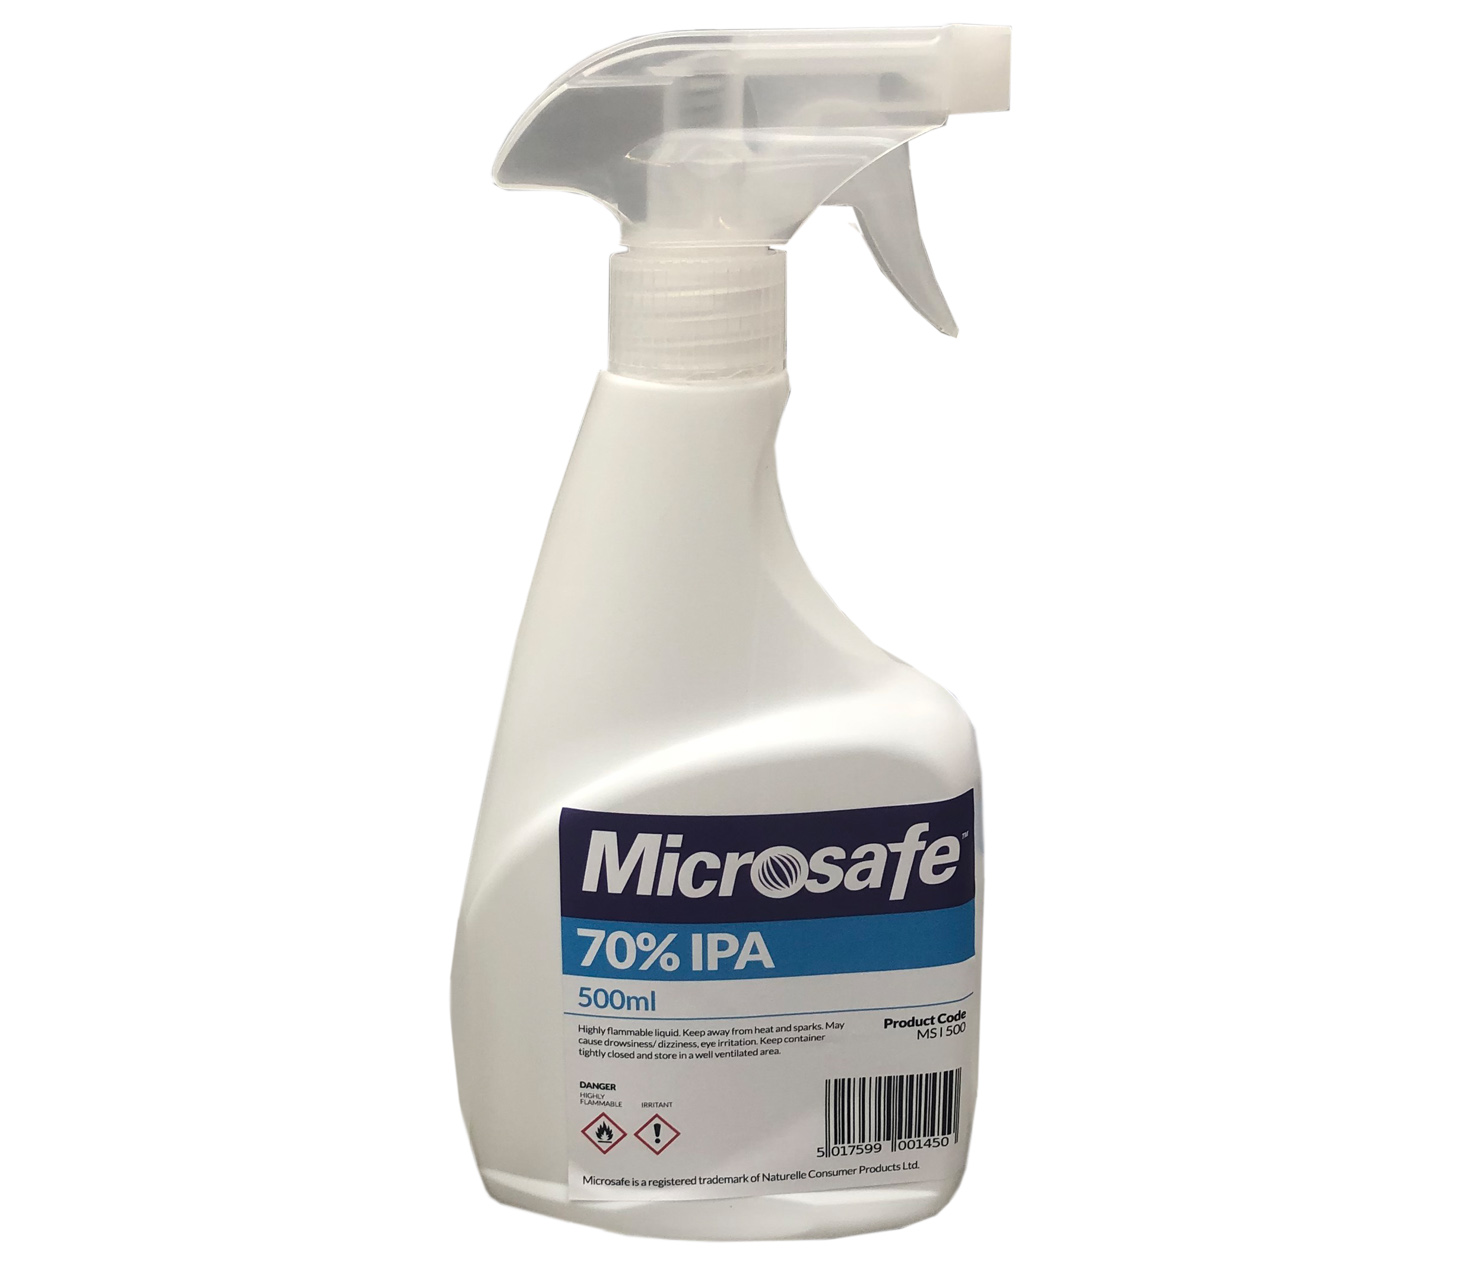 637218744367043455_microsafe_spray_500ml.jpg